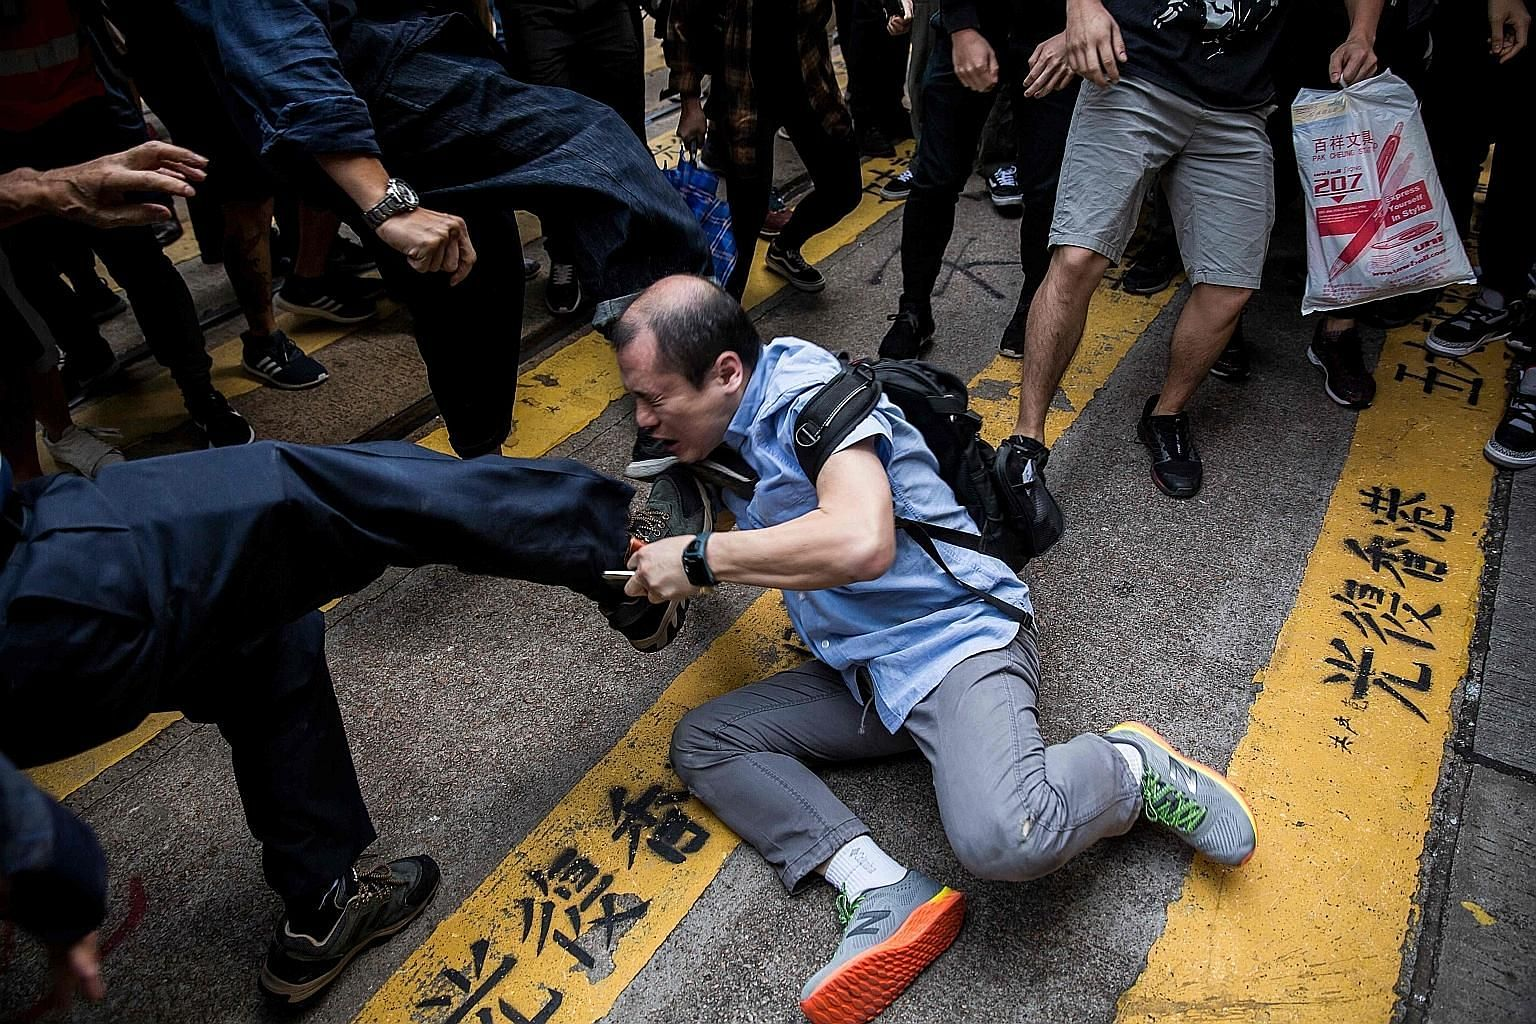 A man being beaten up after getting into an argument during a demonstration of office workers and protesters in Central, in Hong Kong, yesterday. The city's government confirmed yesterday that the police force would get reinforcements from 100 member